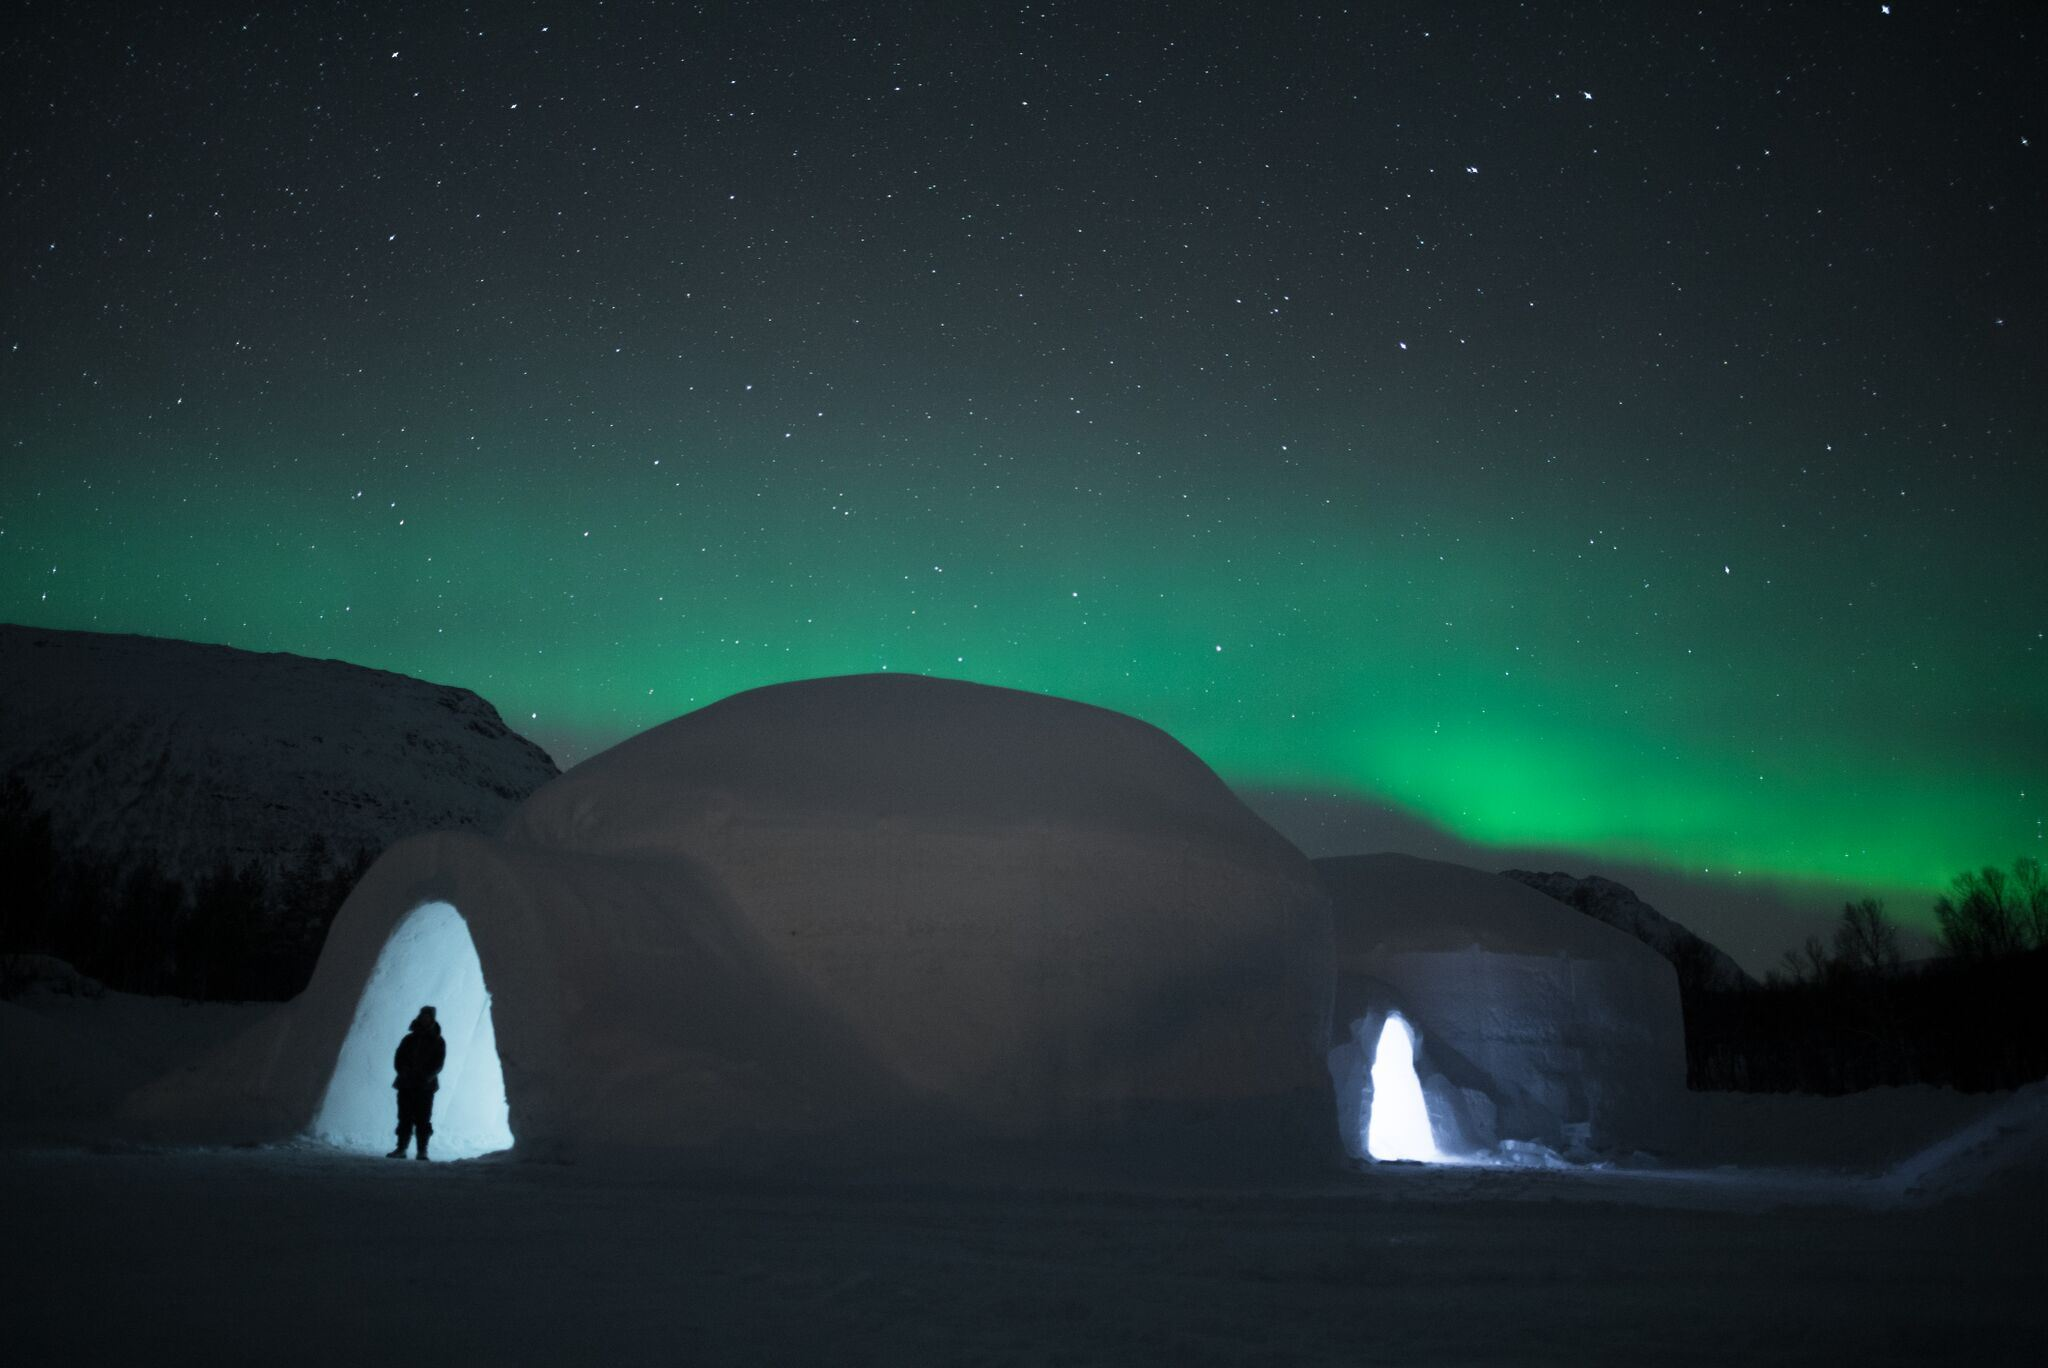 Ice hotel: Tromsø's latest attraction - Destination Tromsø